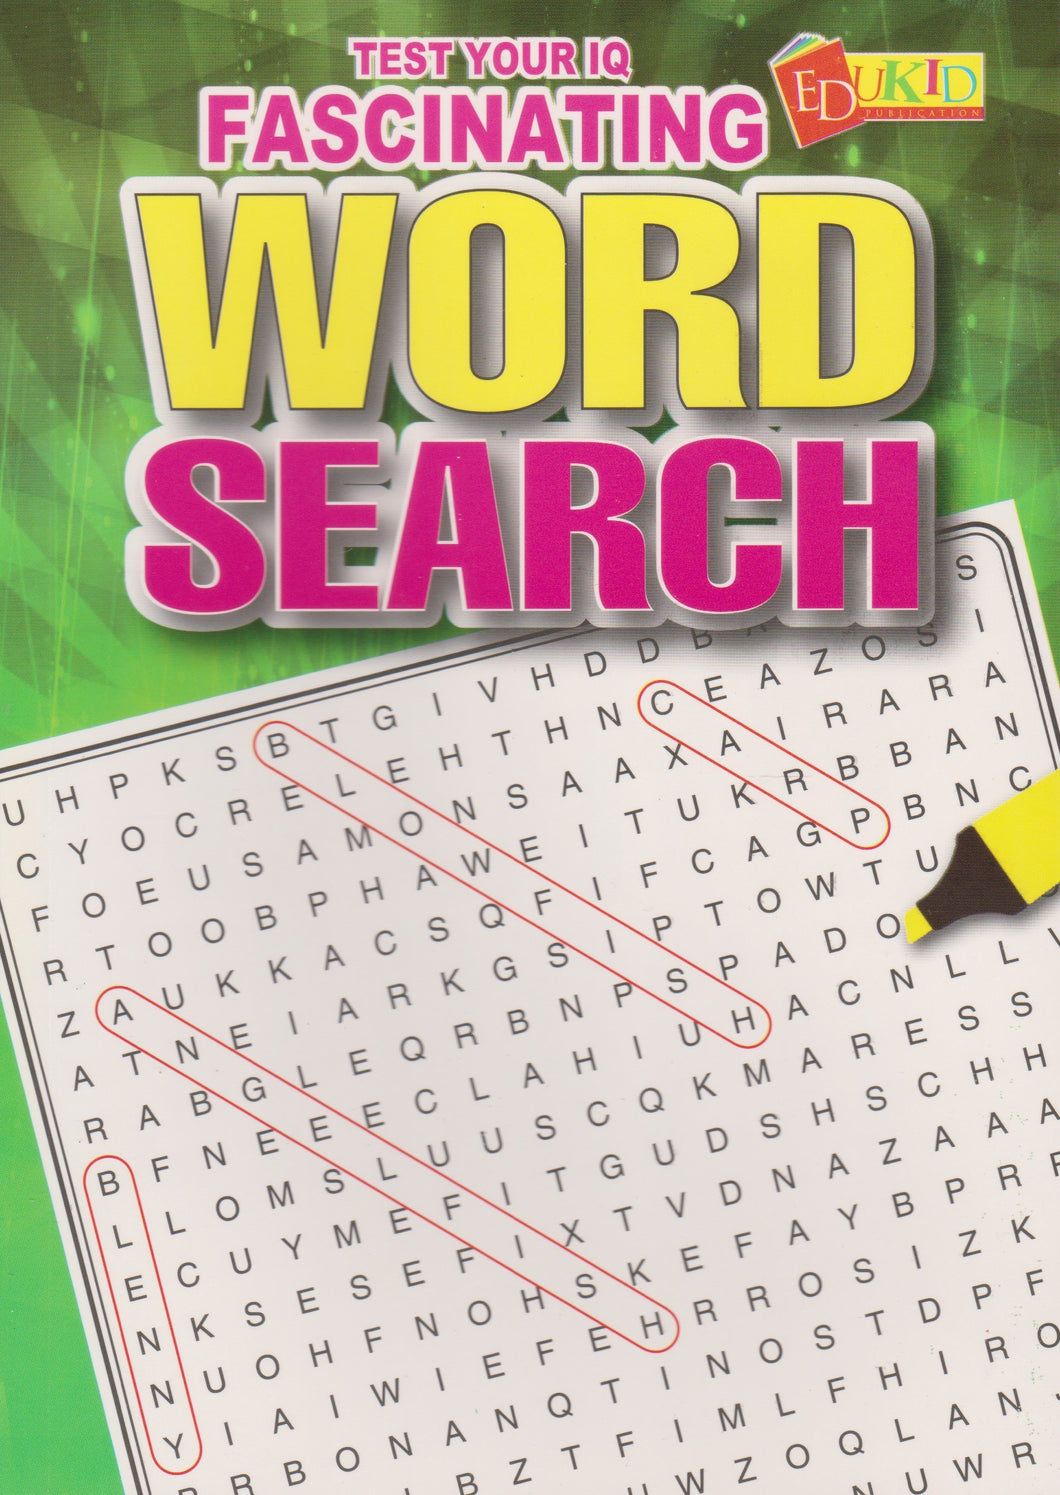 Edukid: Test Your IQ: Fascinating Word Search